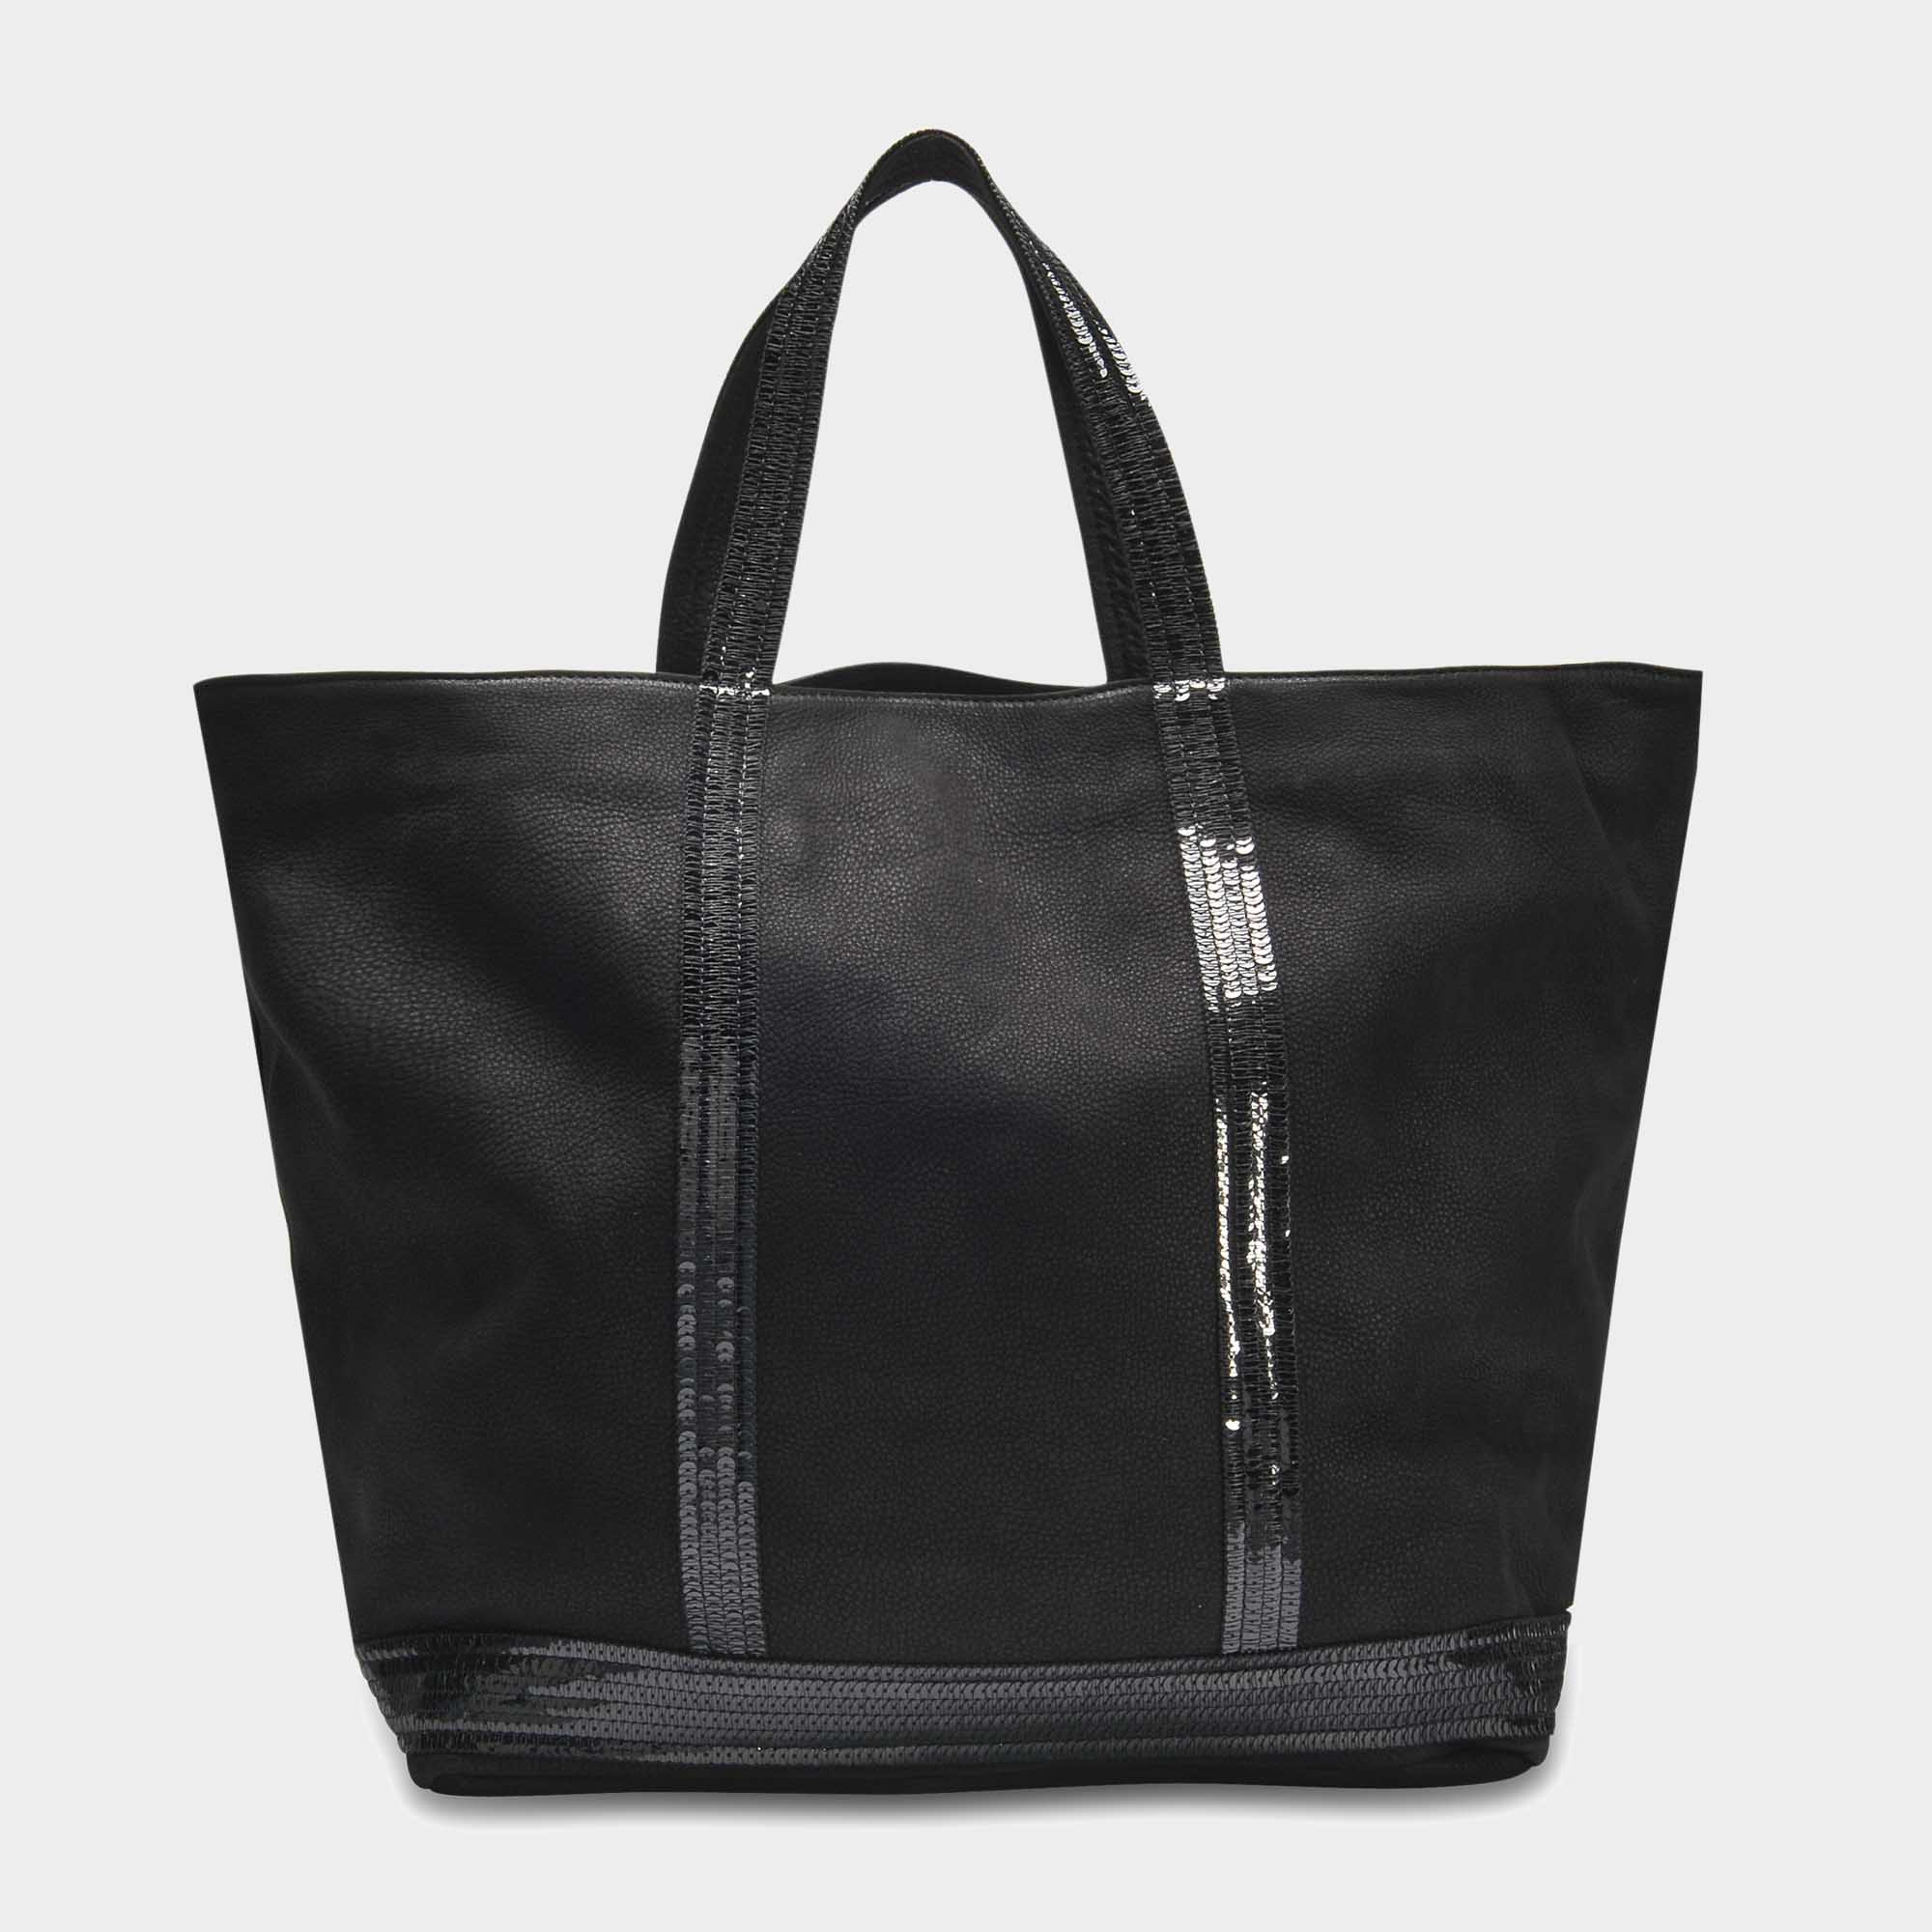 Vanessa Bruno VANESSA BRUNO | Washed Leather and Sequins Medium + Tote Bag in Coffee Cowhide